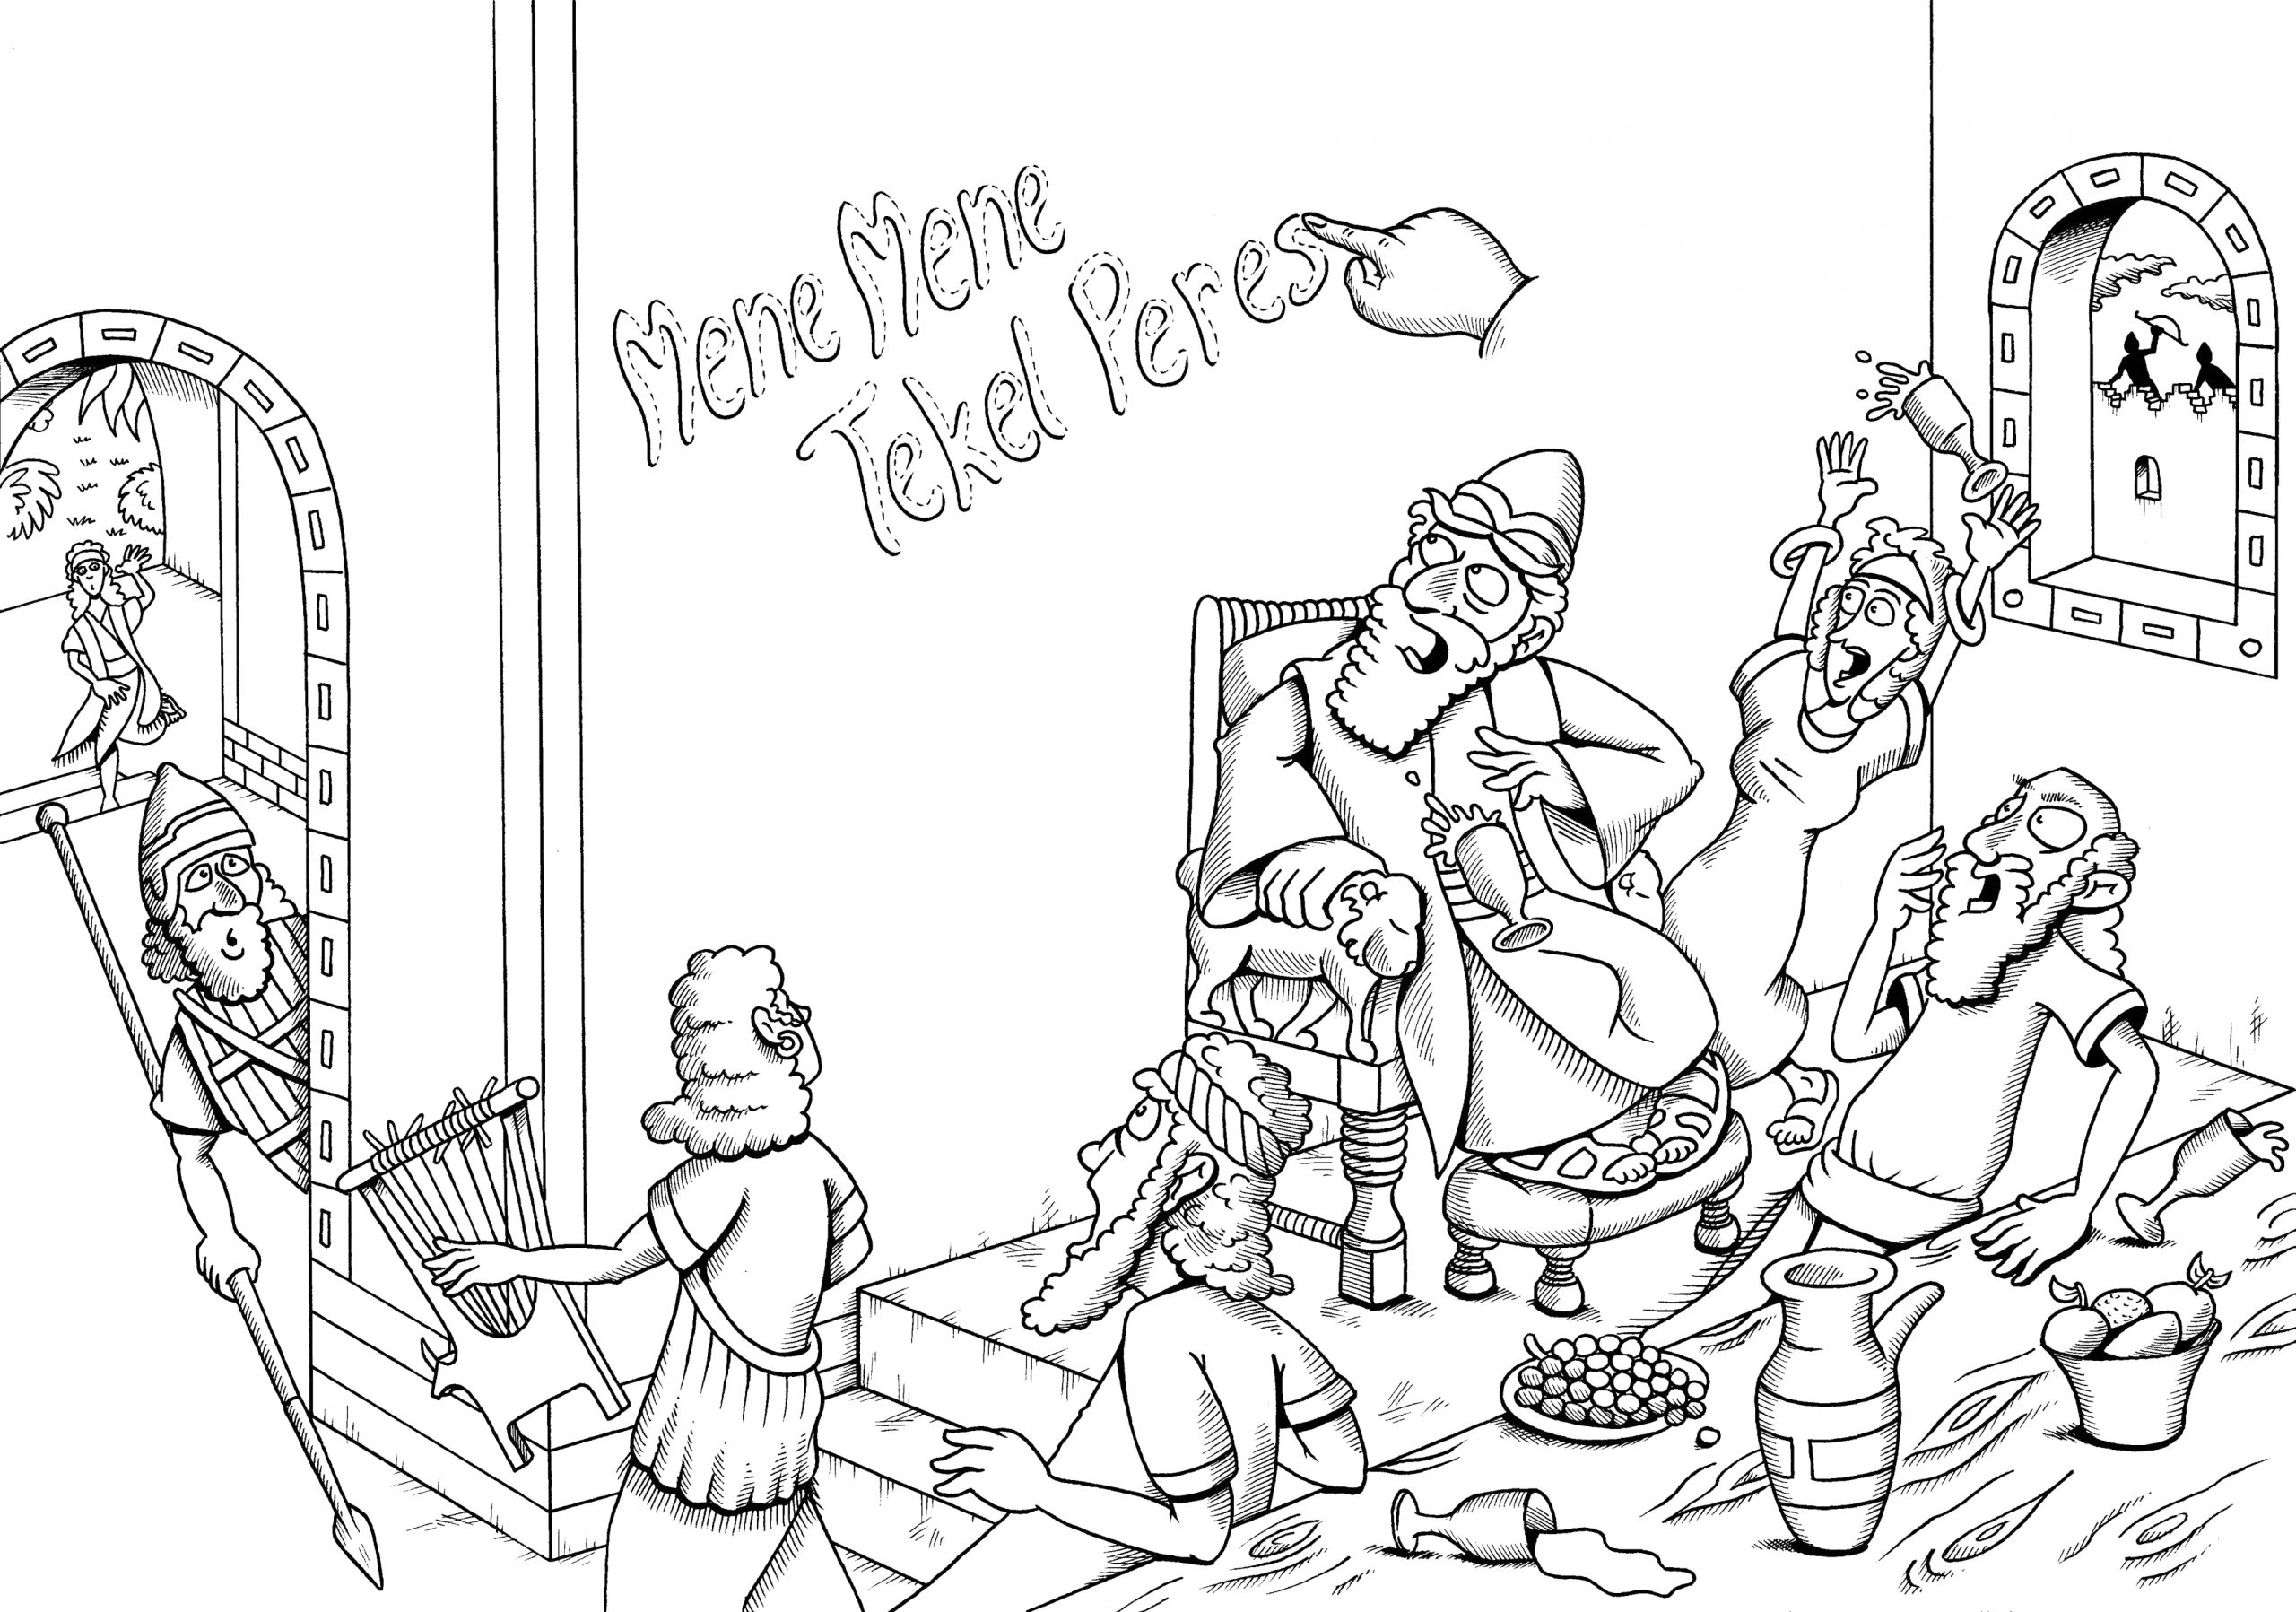 Daniel and the Writing On the Wall Coloring Page Daniel Writing the Wall Coloring Page Coloring Pages